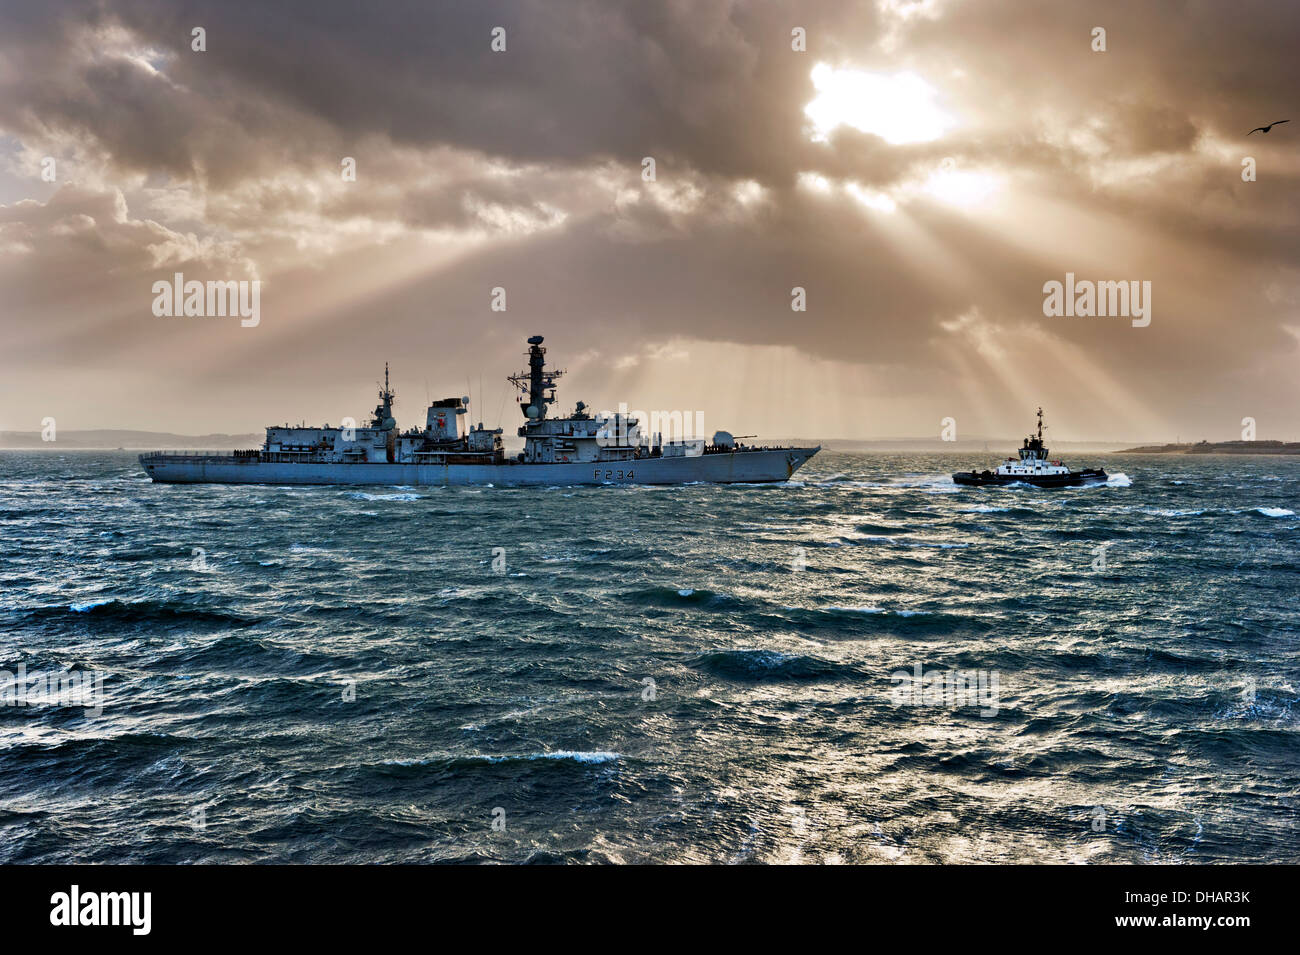 HMS Iron Duke, F234, of the Royal Navy being towed through The Solent by a tug into Portsmouth Harbour naval base, Hampshire, UK. - Stock Image